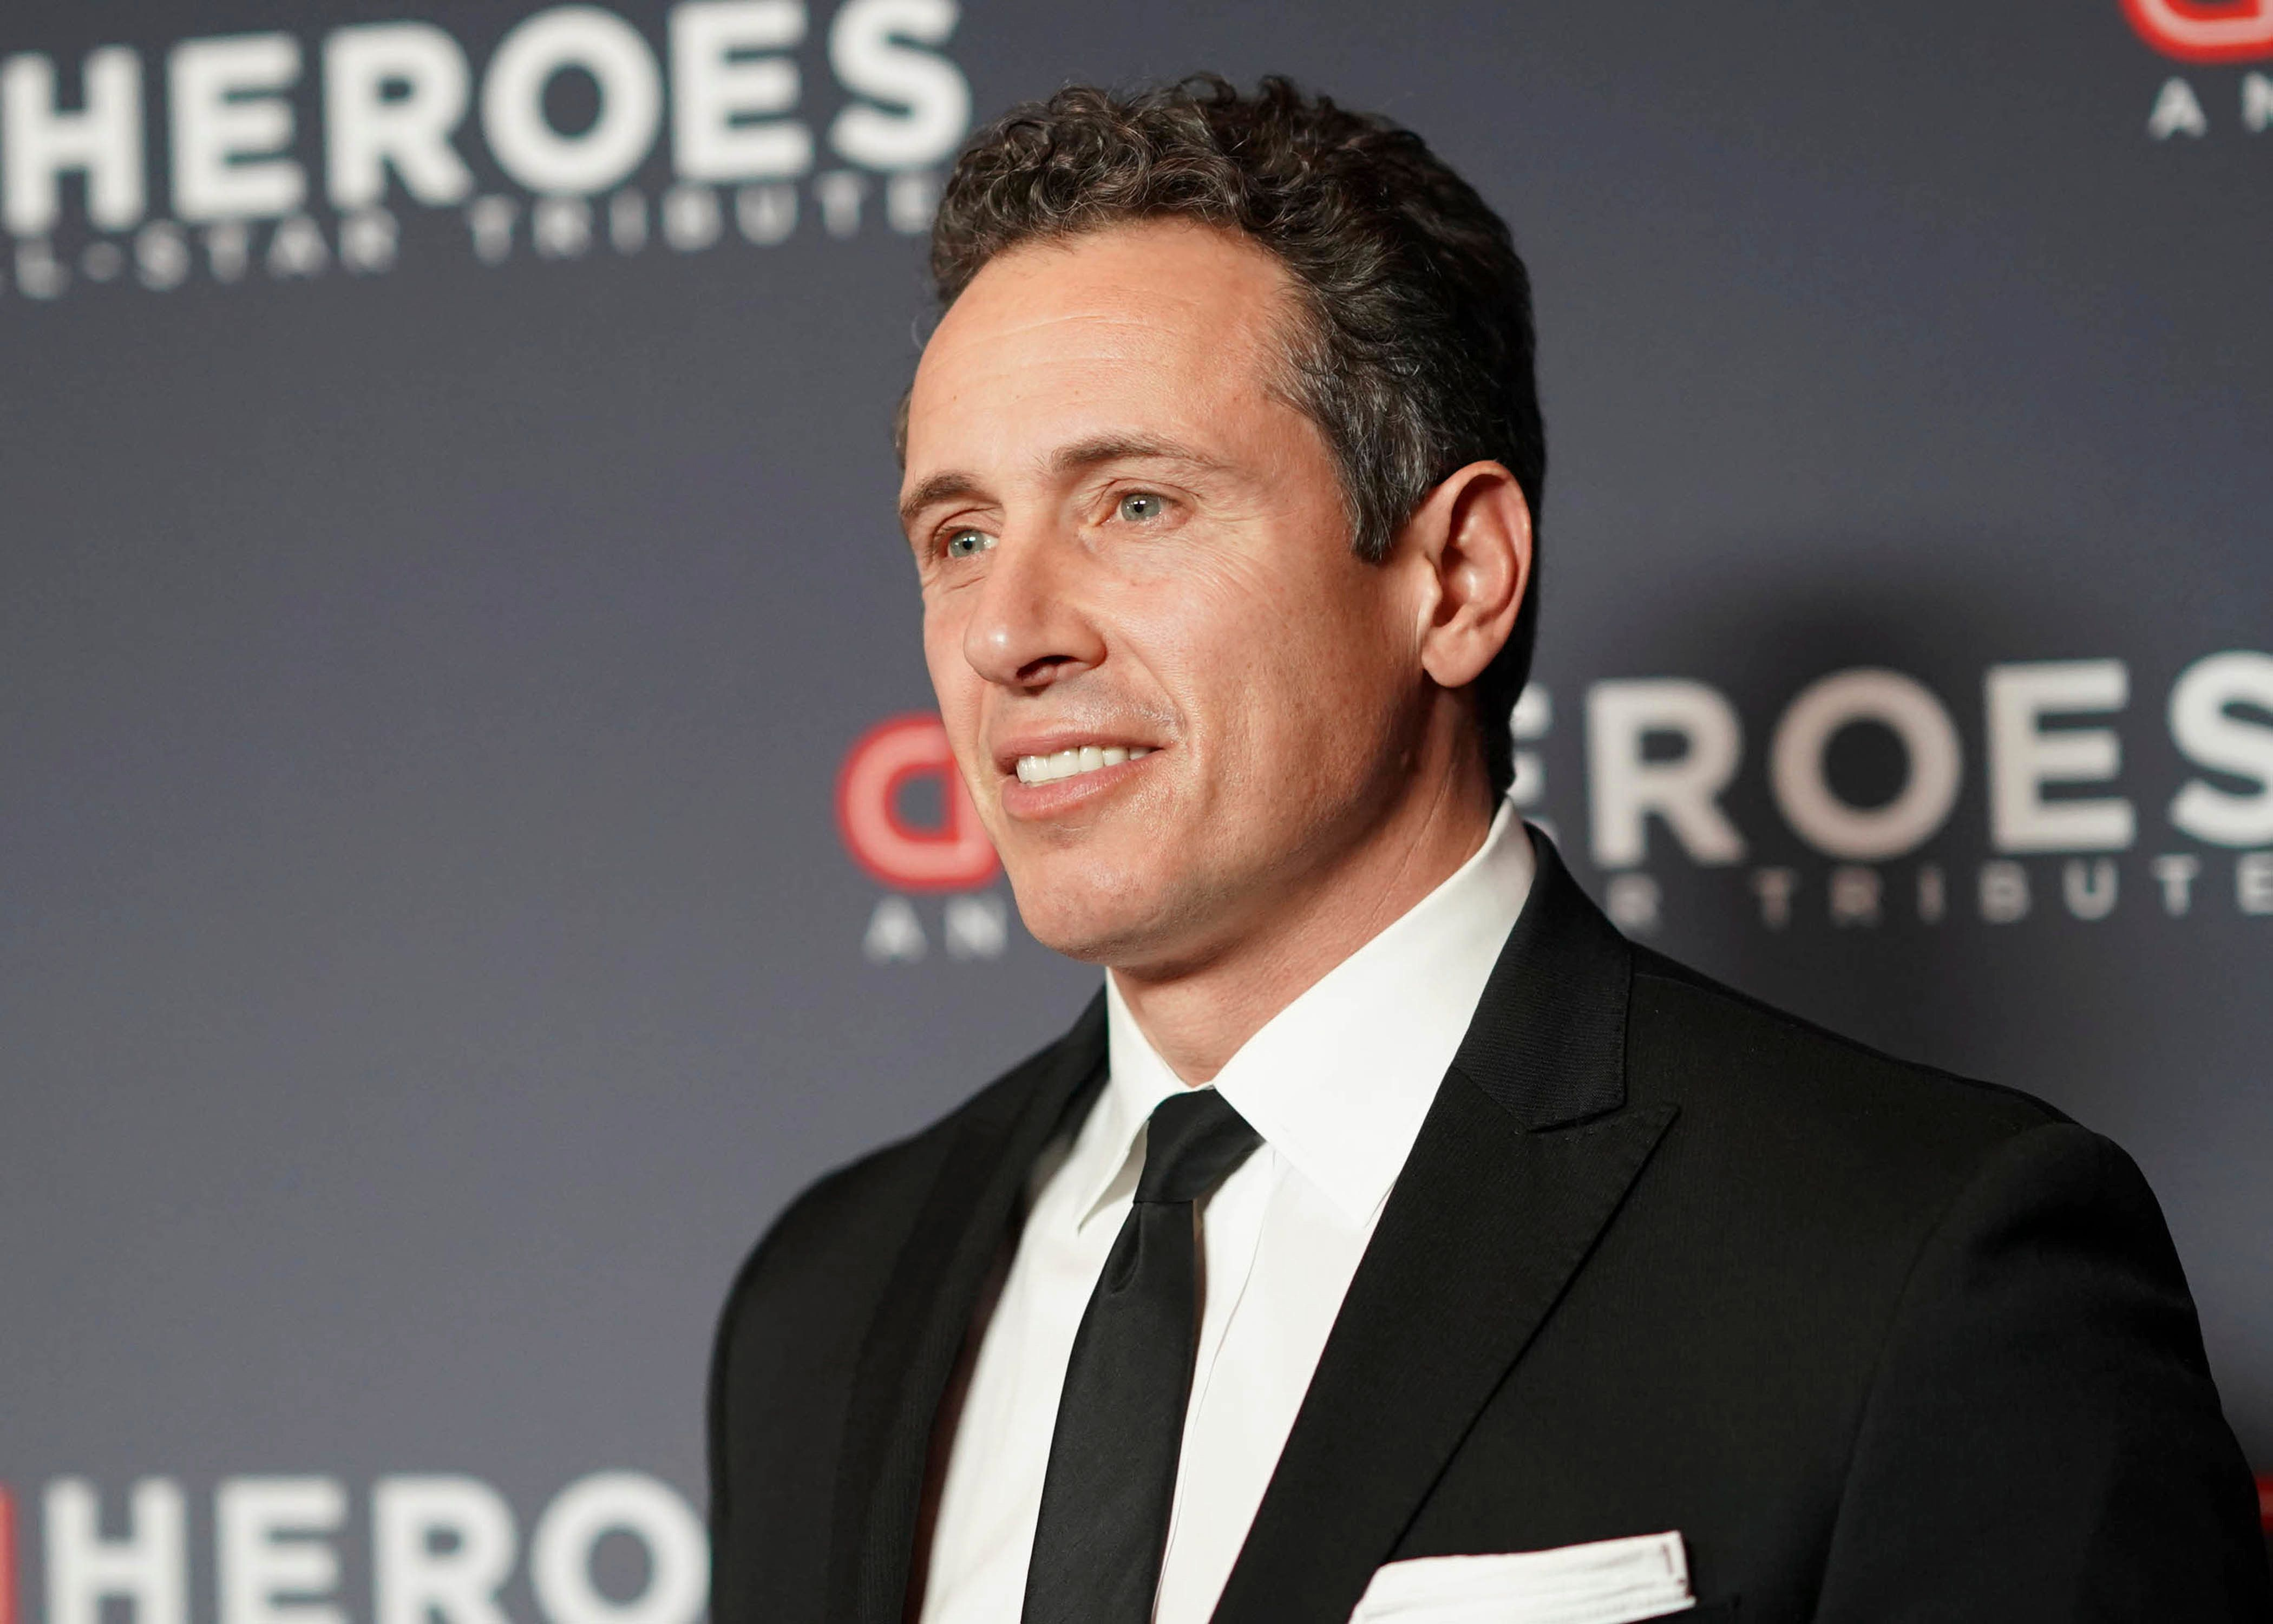 Photo by: John Nacion/STAR MAX/IPx 2018 12/9/18 Chris Cuomo at the 12th Annual CNN Heroes: An All-Star Tribute at the American Museum of Natural History in New York City.